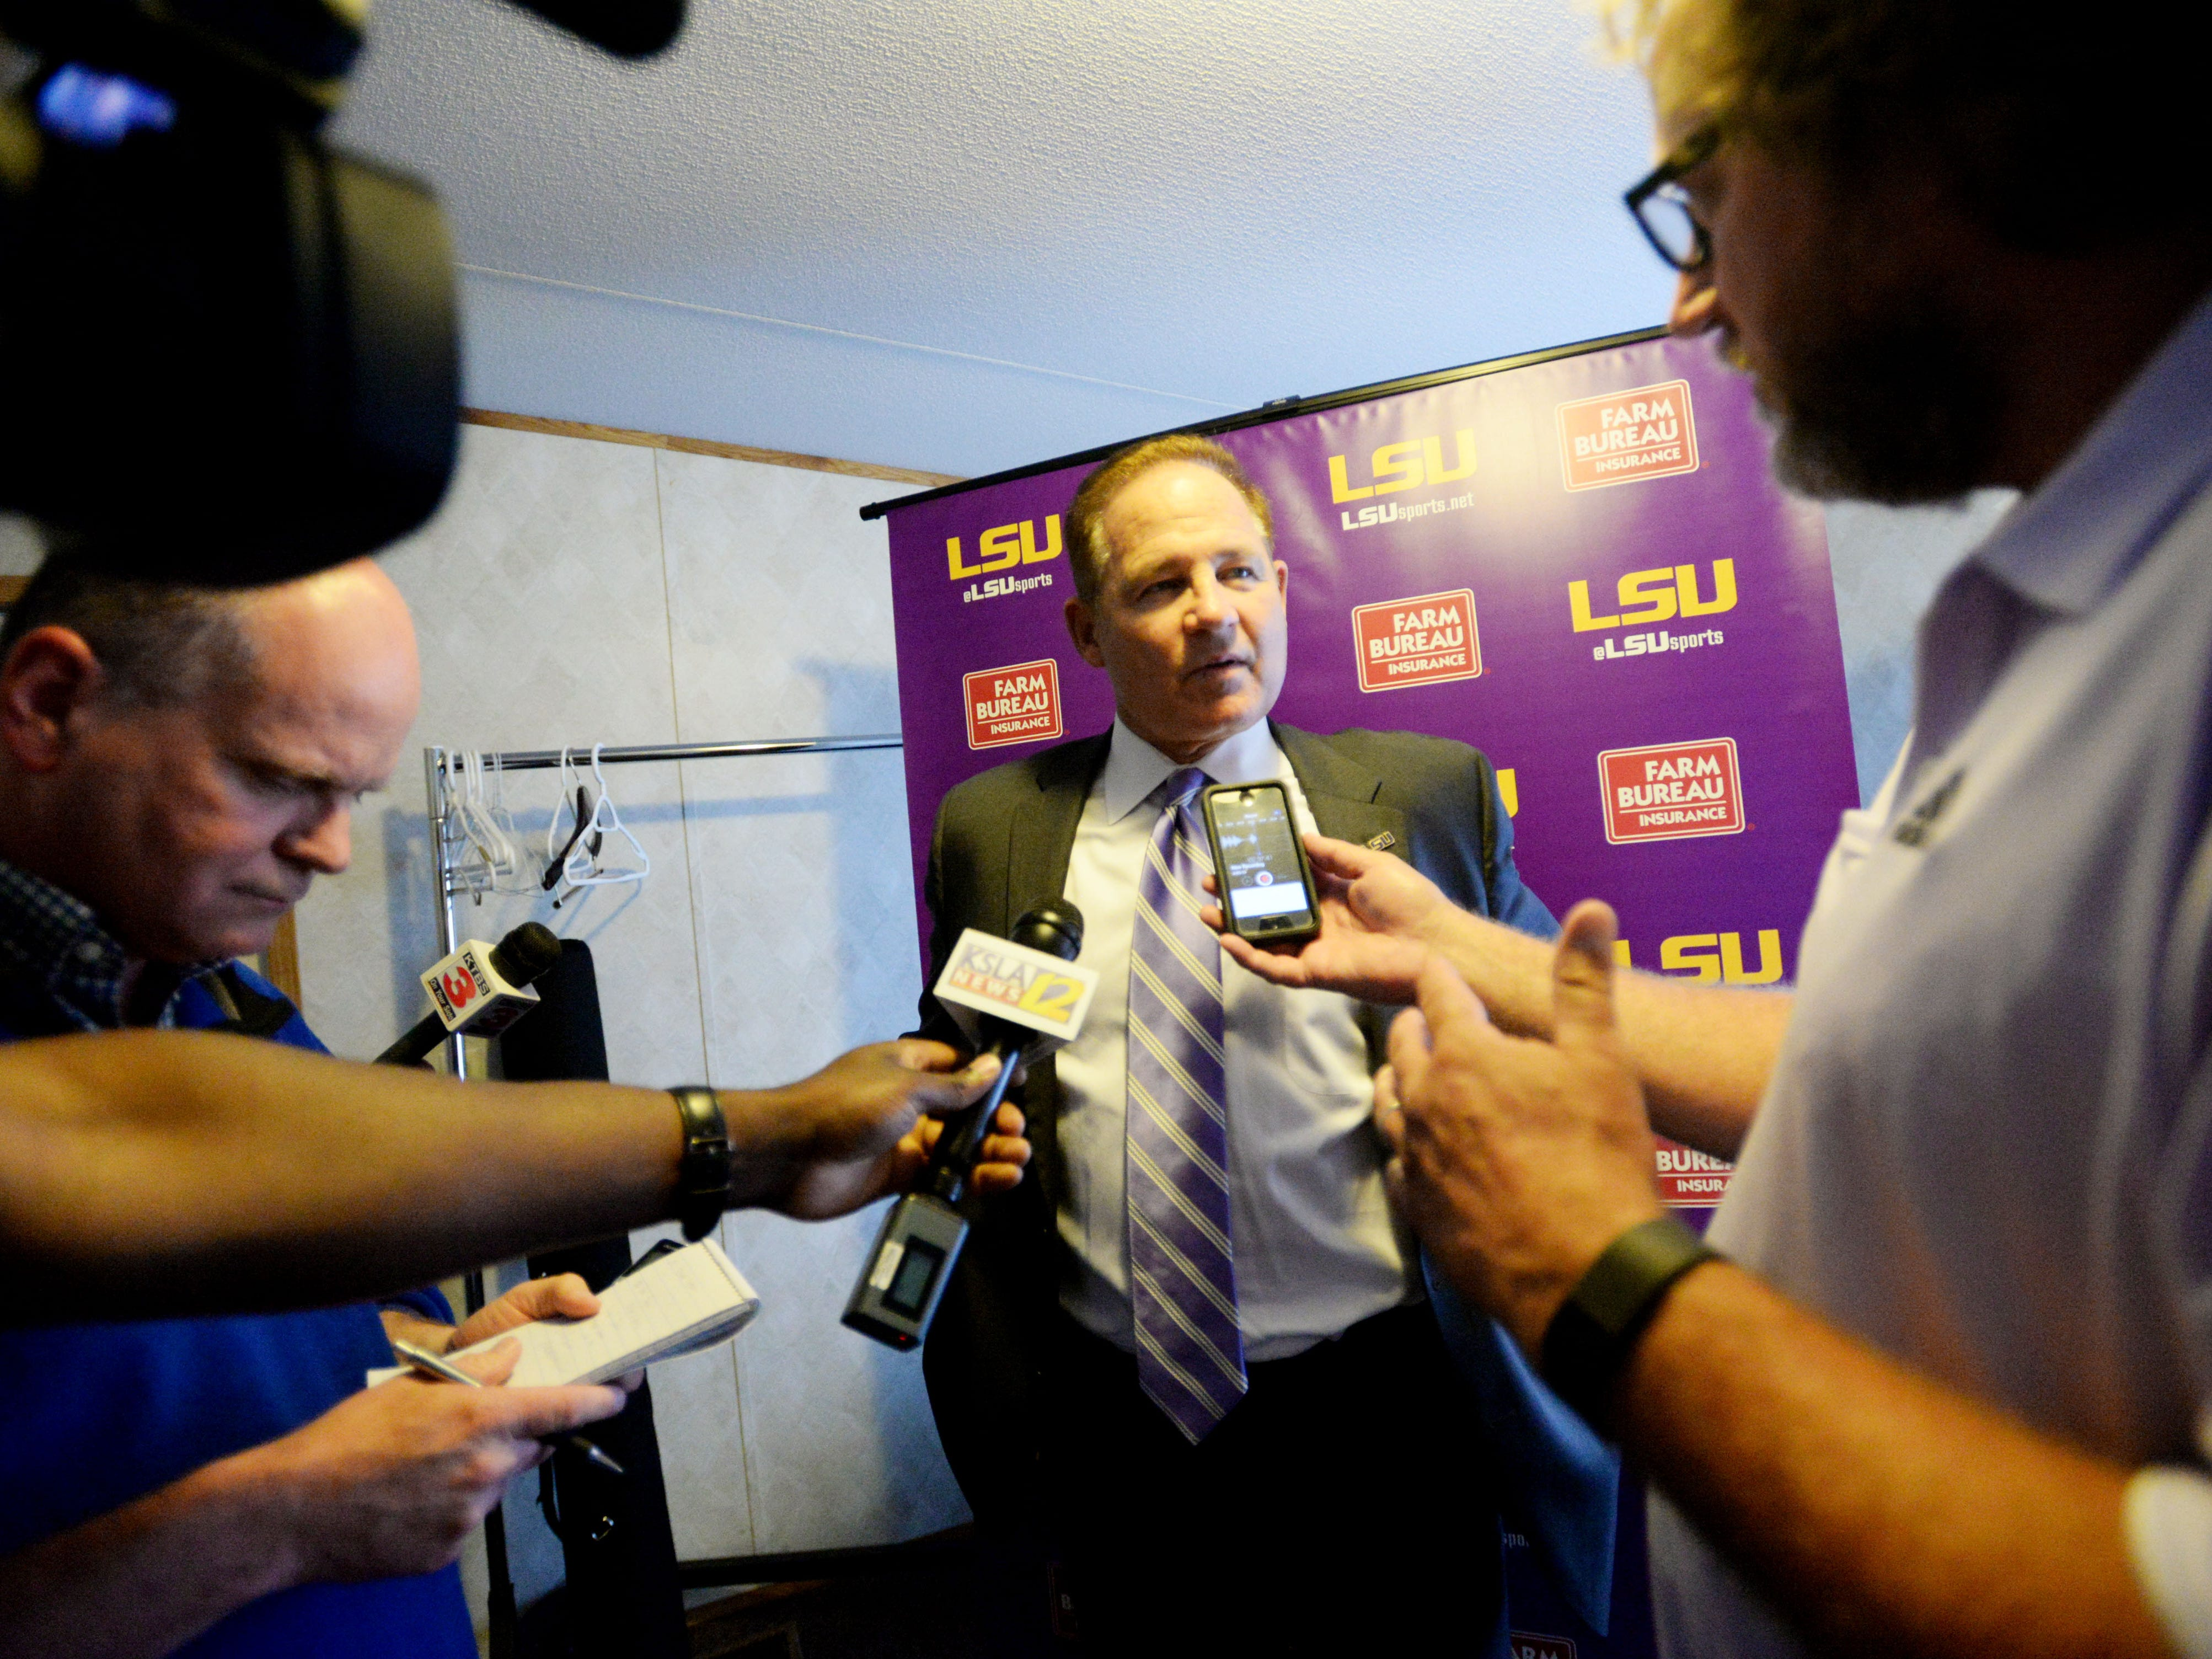 LSU football coach Les Miles speaks to reporters moments before the Tiger Tour dinner at the Horseshoe Riverdome Monday evening.